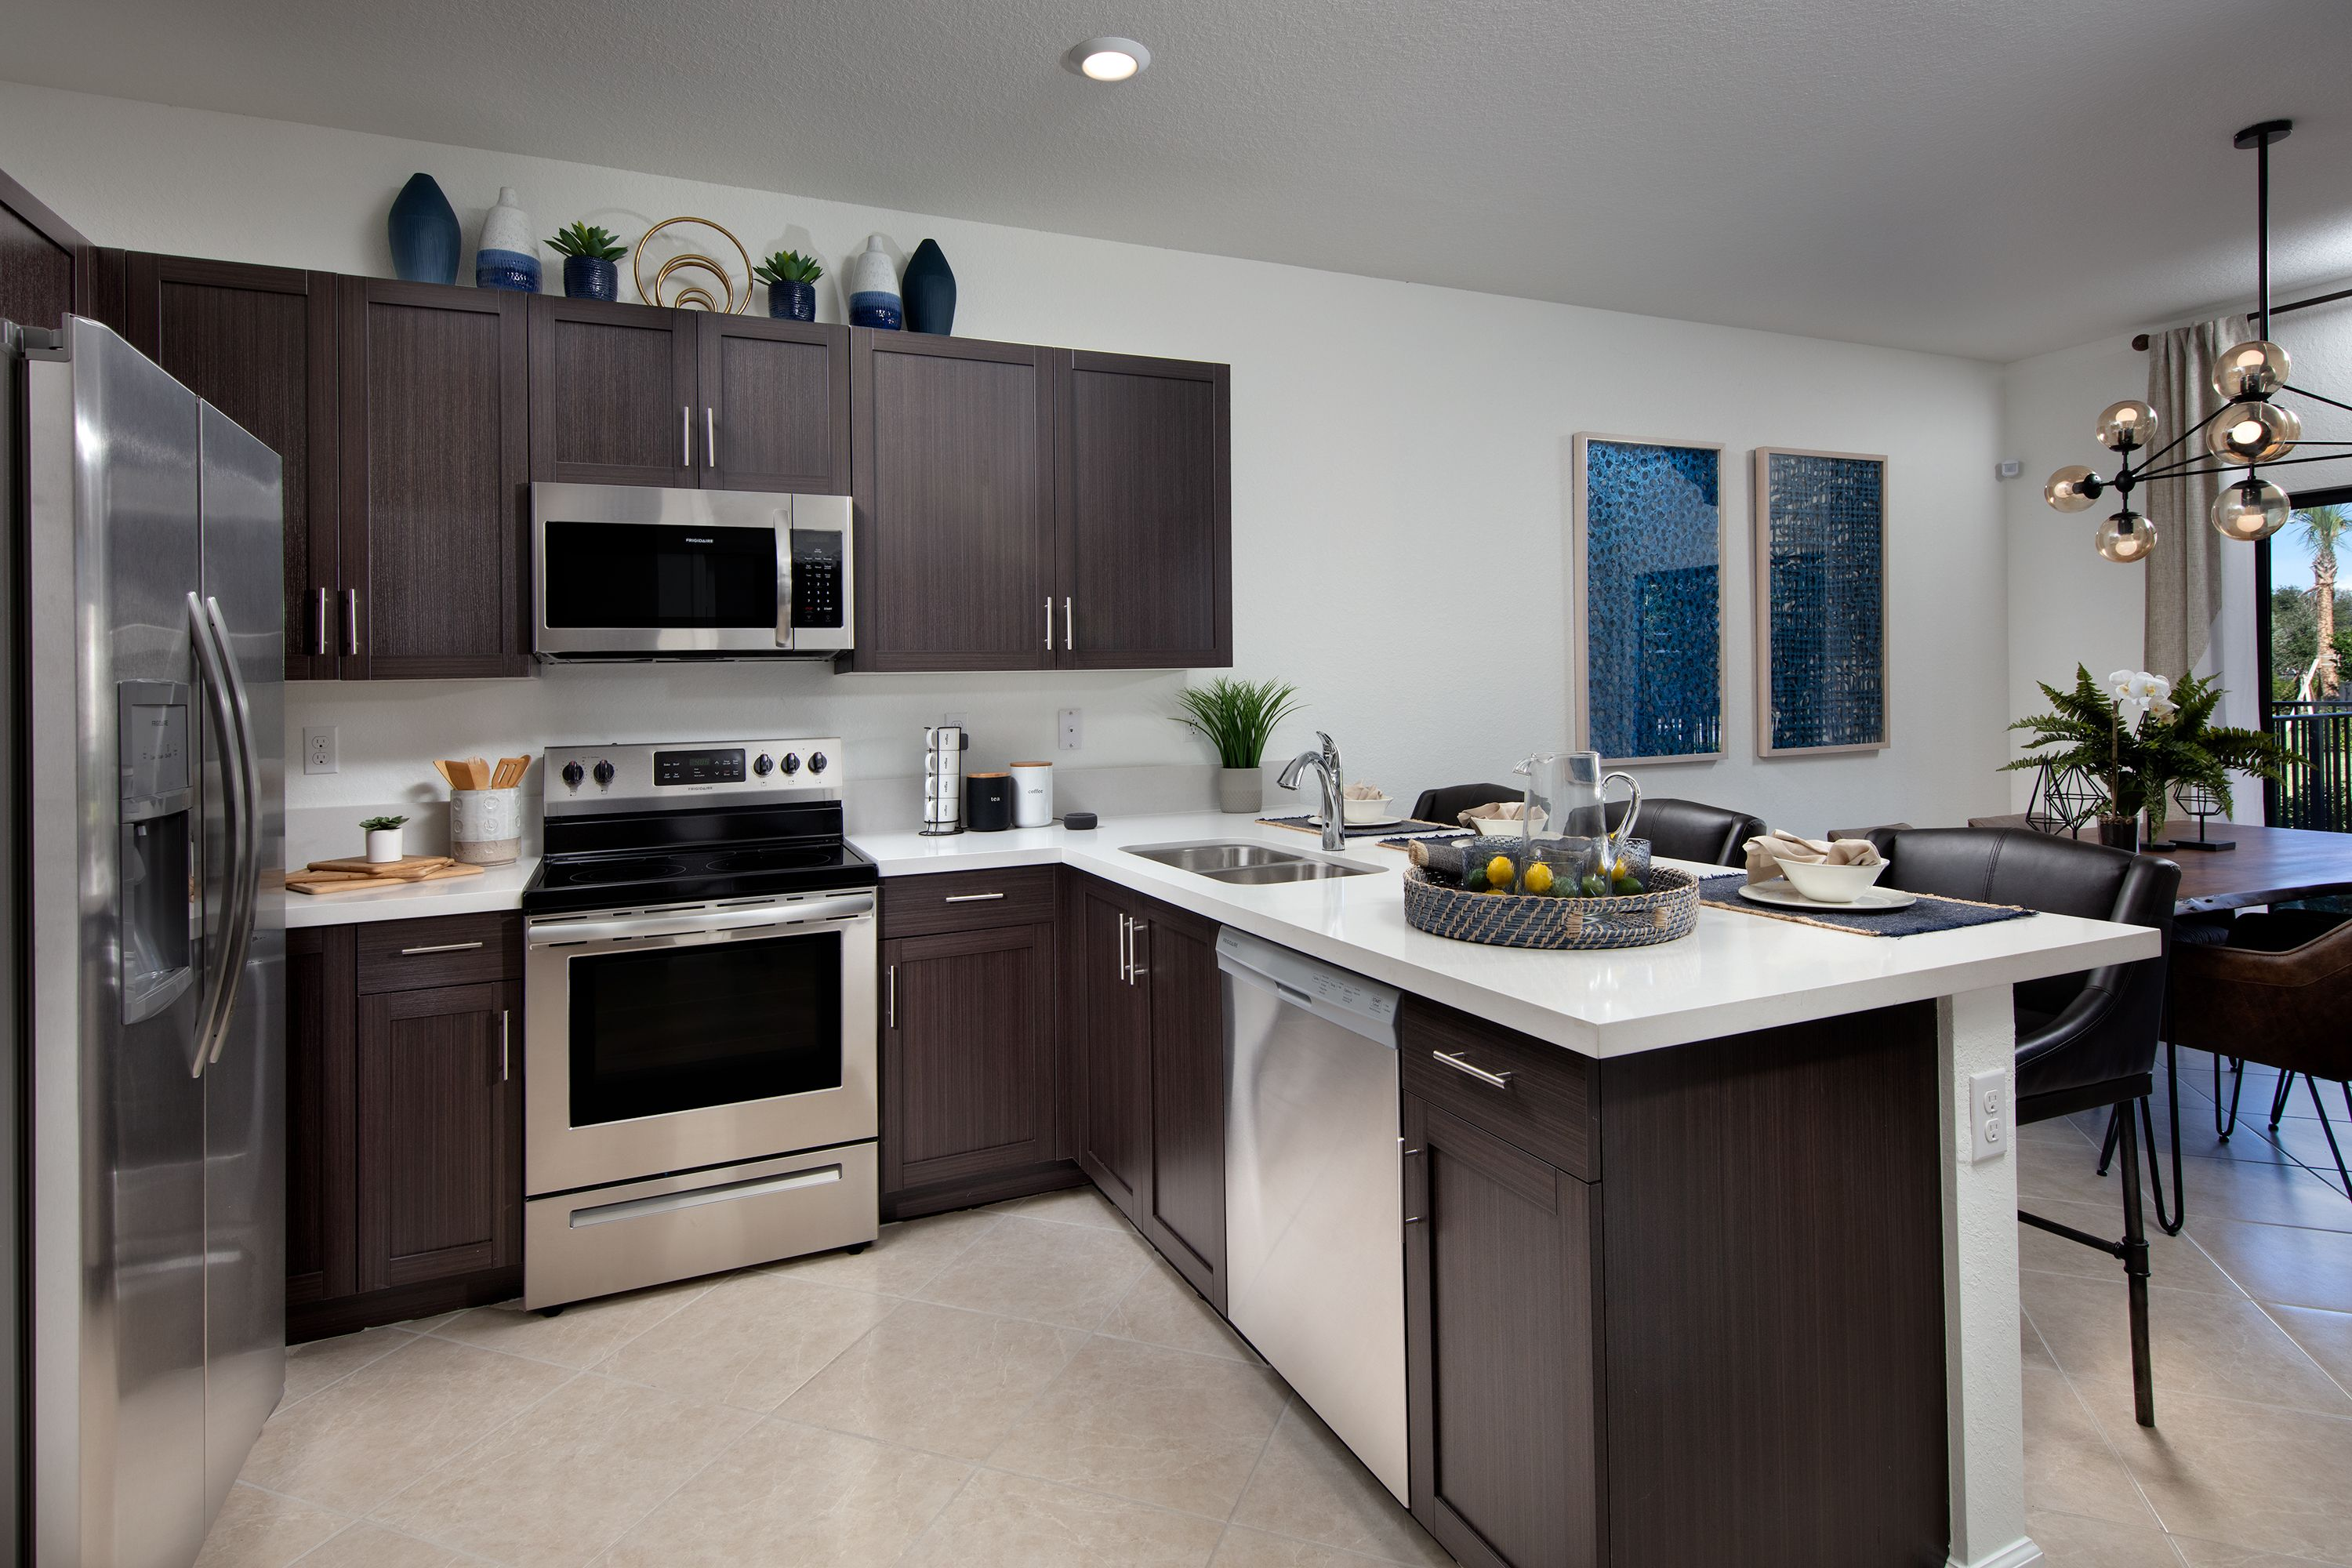 In This Deluxe Kitchen Enjoy A Stainless Steel Appliance Package Contemporary Cabinets In Your Choice Of Designer Dream Kitchen Lennar Contemporary Cabinets